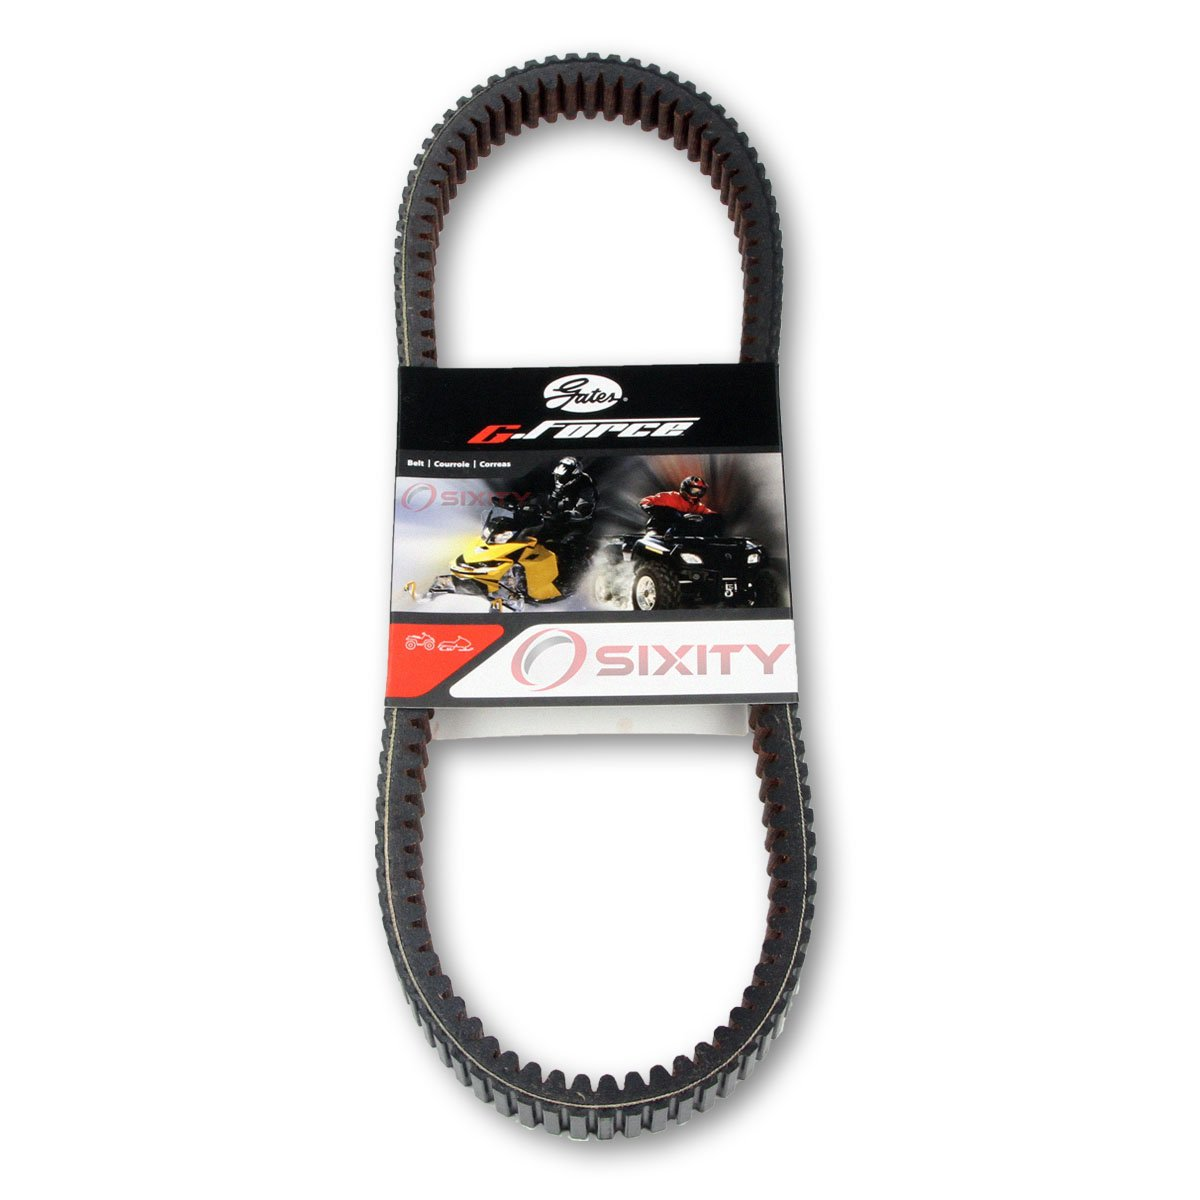 Gates Drive Belt 2015-2016 Polaris Ranger 900 XP EPS Northstar Edition G-Force CVT Heavy Duty OEM Upgrade